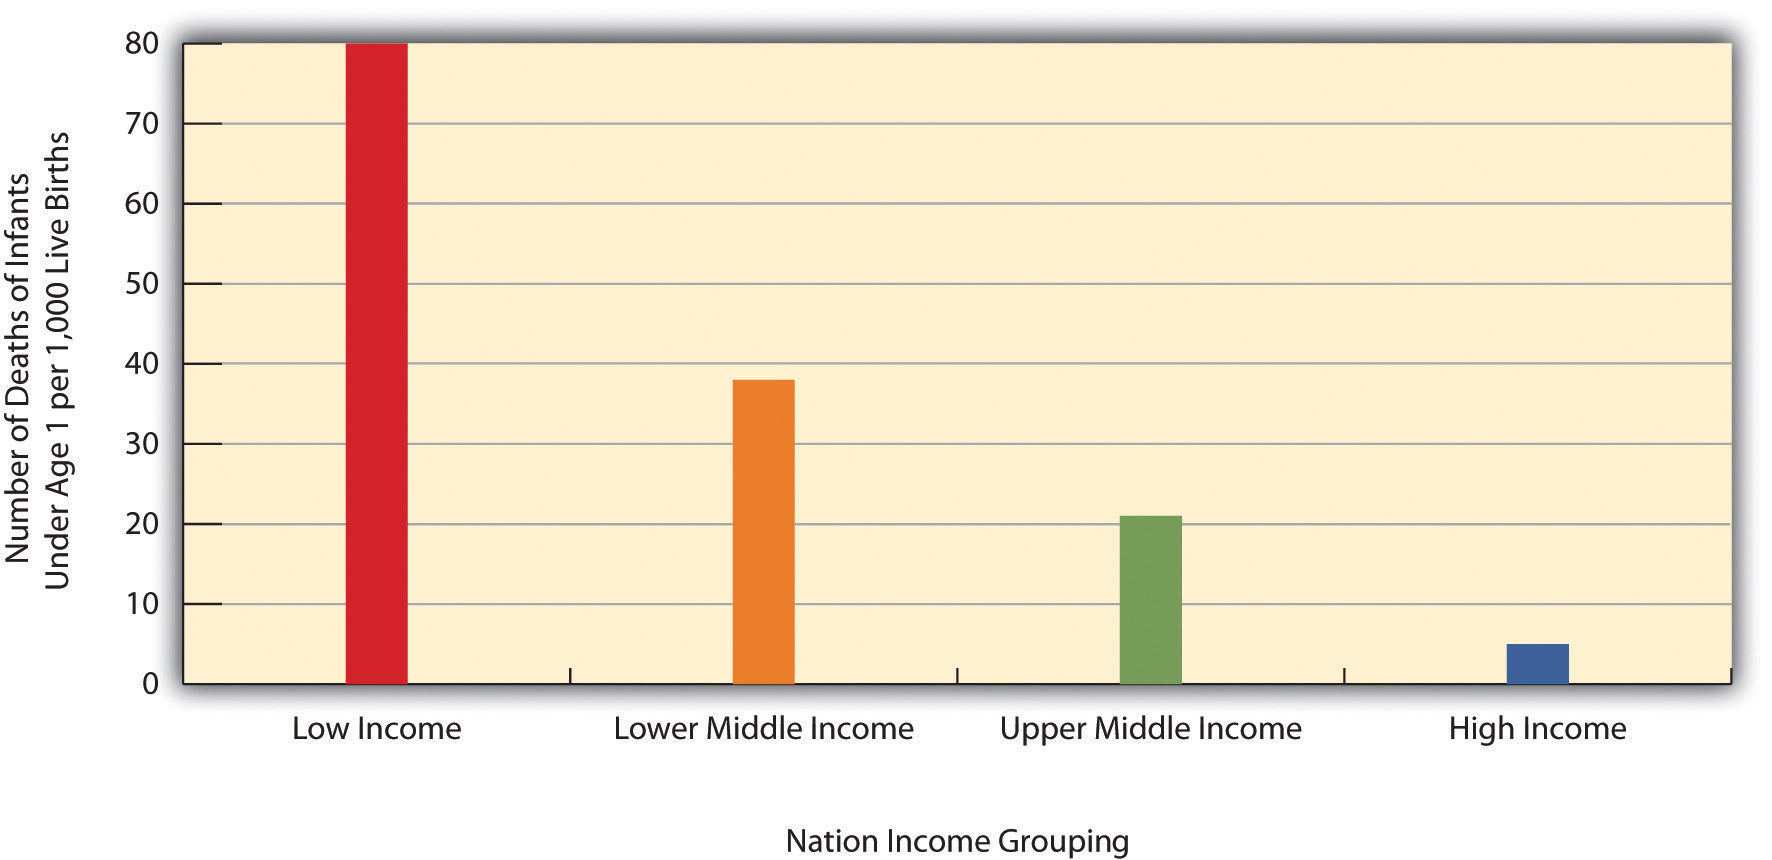 Infant mortality for low income, lower middle income, higher middle income, and high income nations, 2008